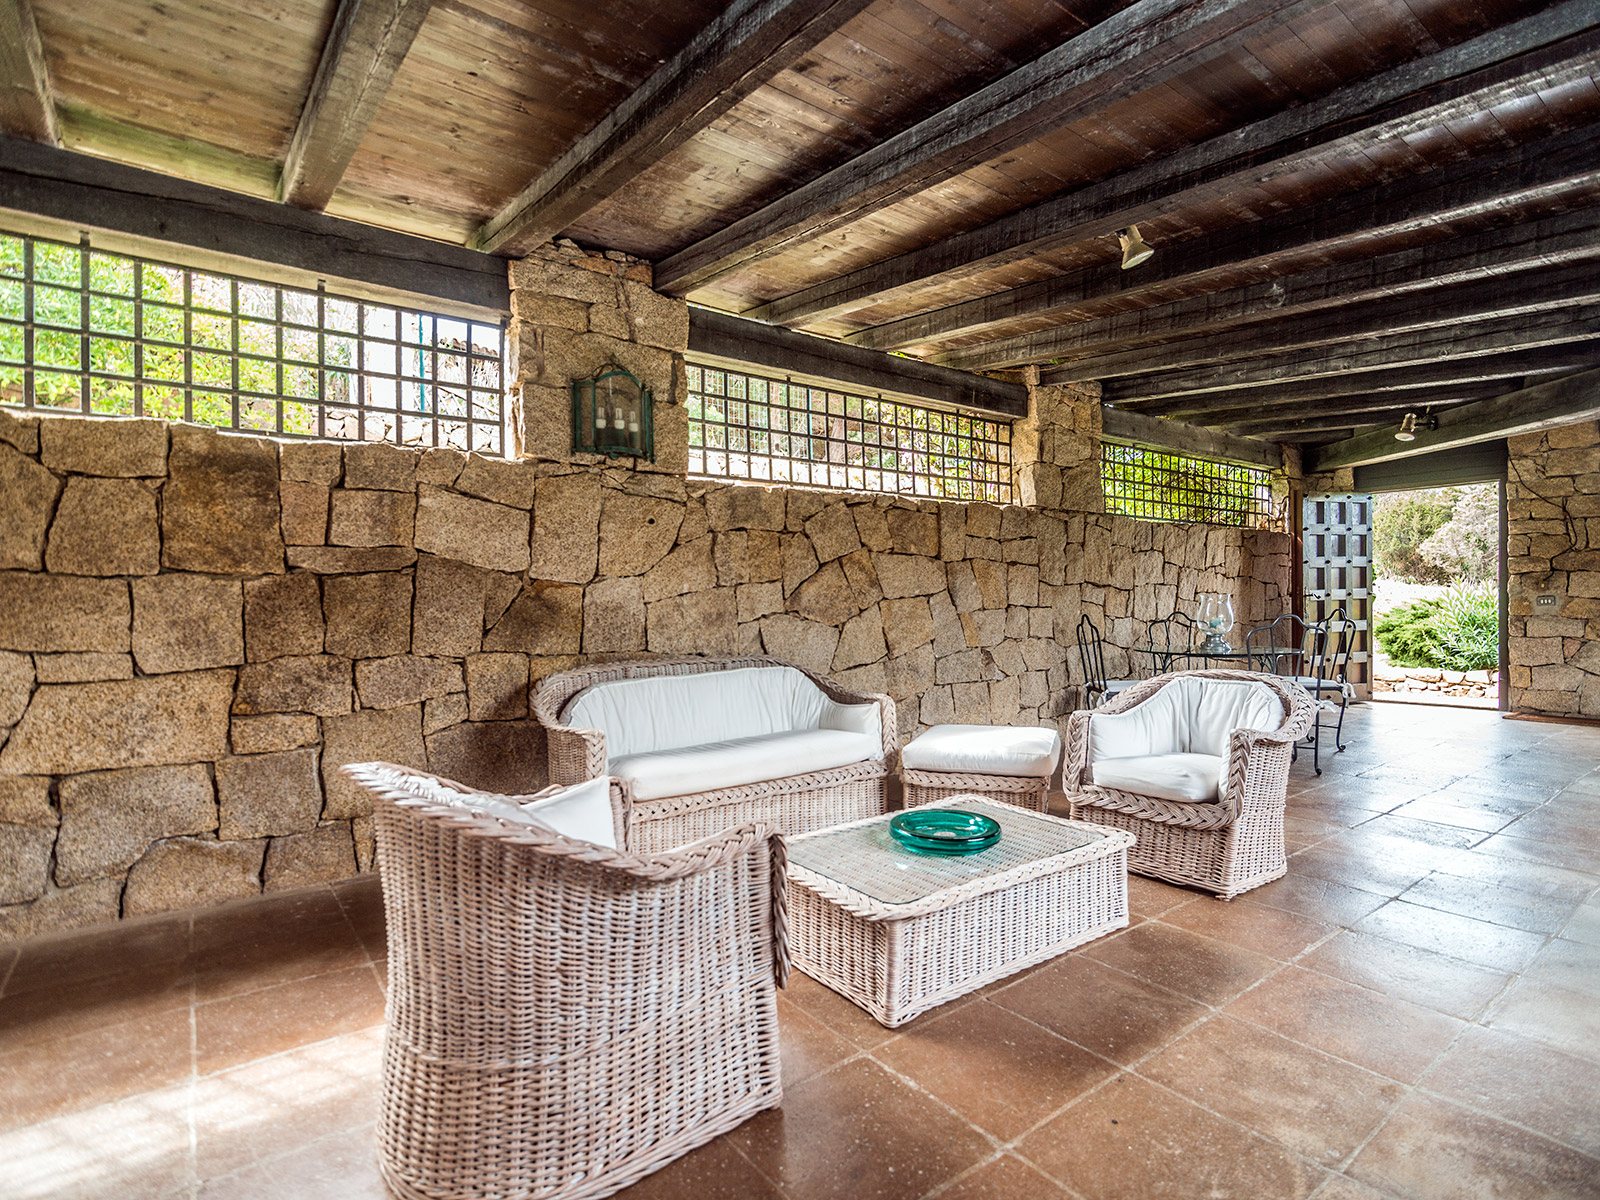 Additional photo for property listing at Villa in Sardinian style with private garden Porto Rotondo, Olbia Tempio Italy